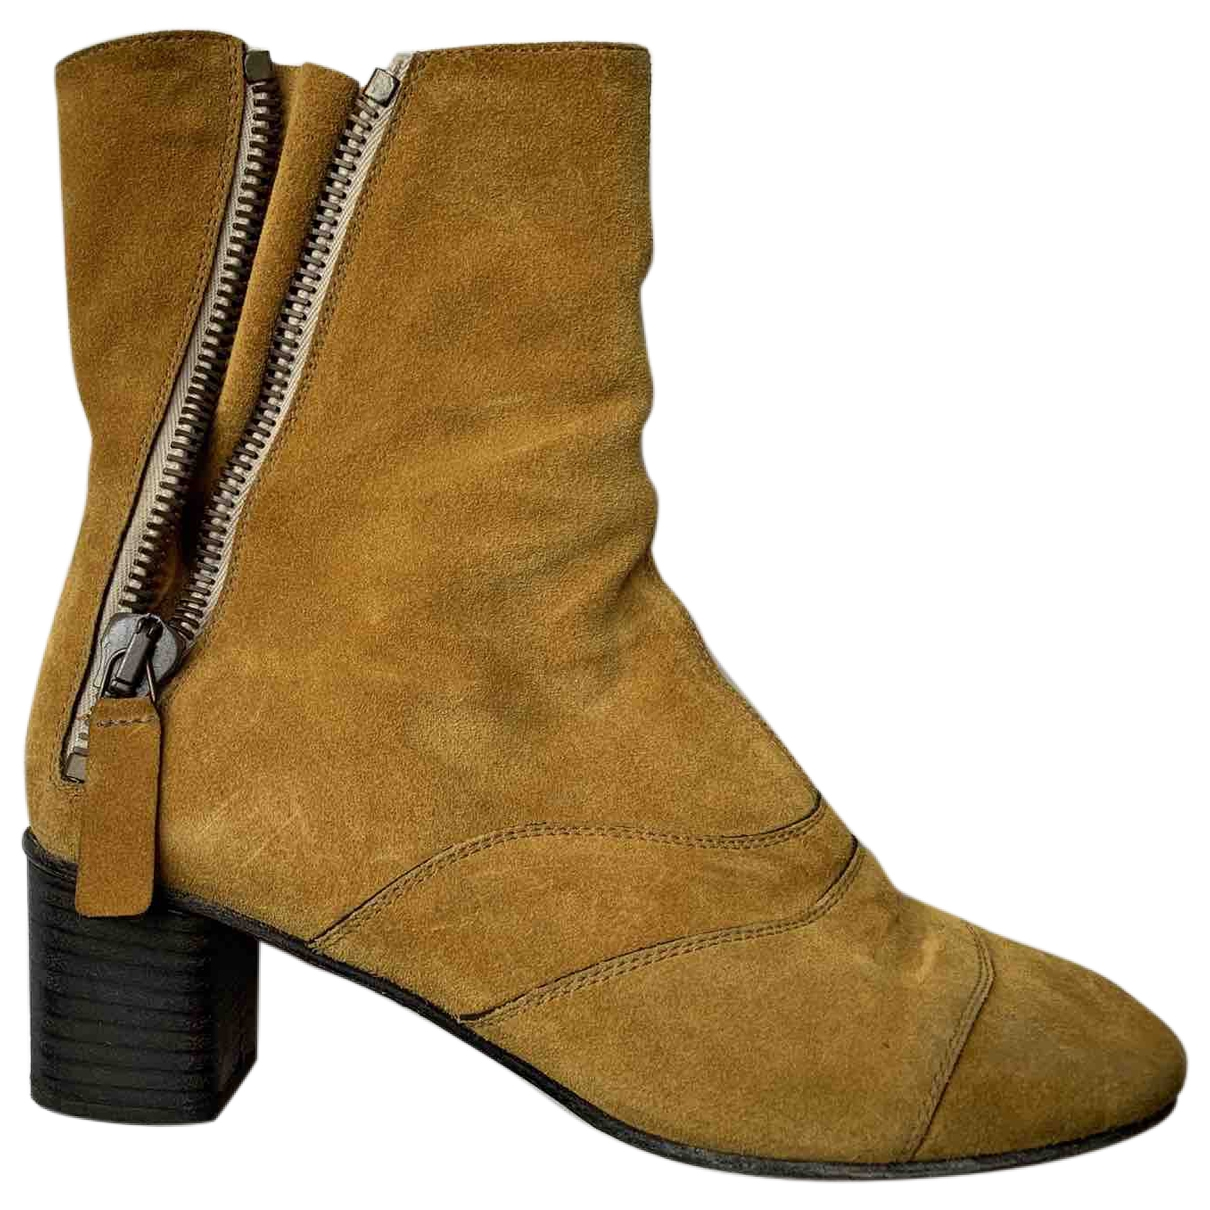 Chloé Lexie Yellow Suede Ankle boots for Women 37 EU